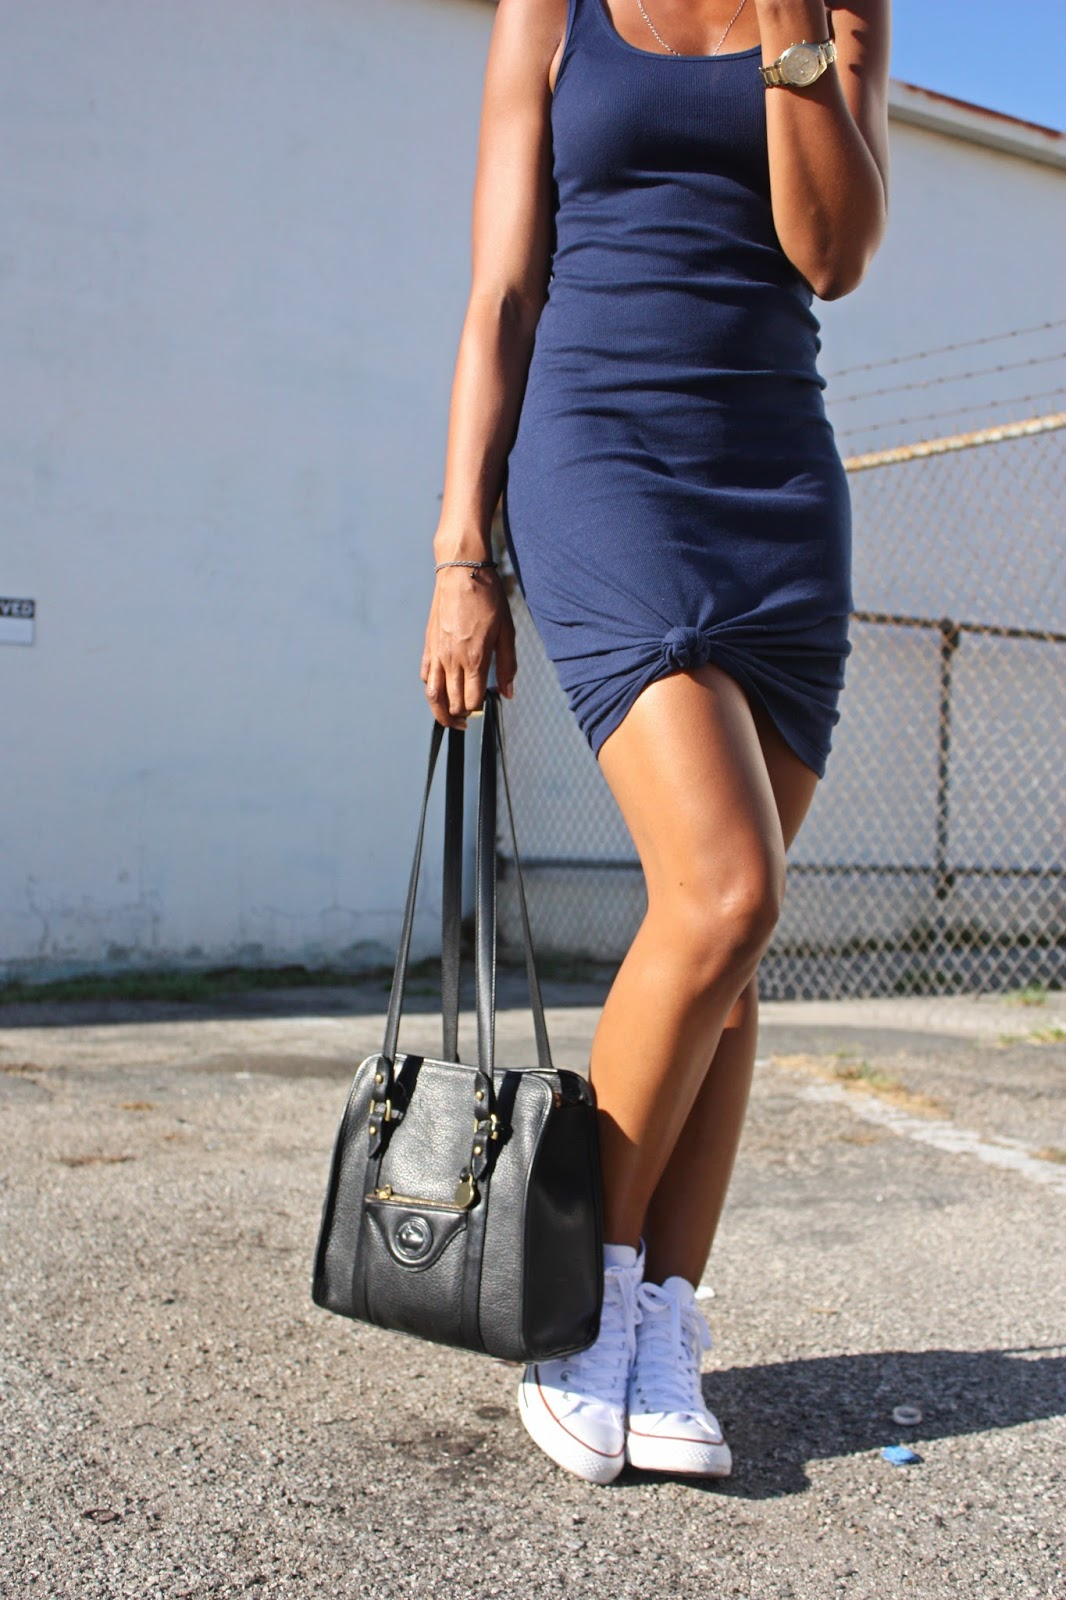 Outfit Details // H&M ribbed knit dress, Converse All Star high-top sneakers, Dooney & Bourke purse, Caravelle NY watch